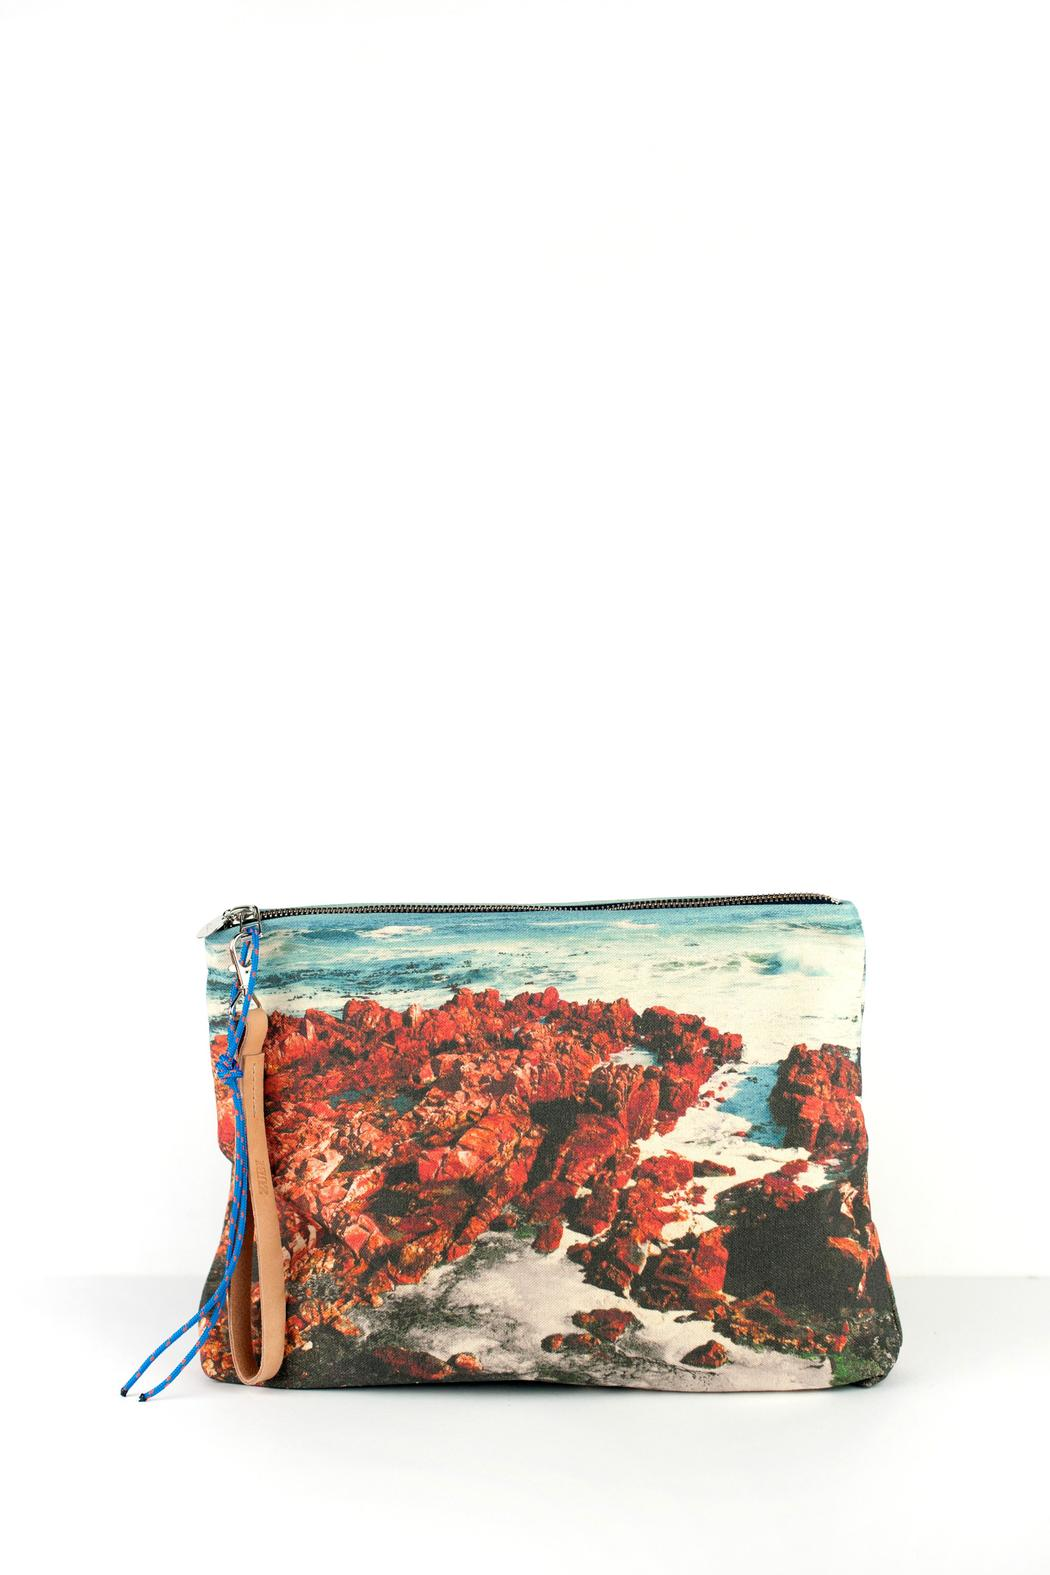 zubi Printed Canvas Clutch - Main Image